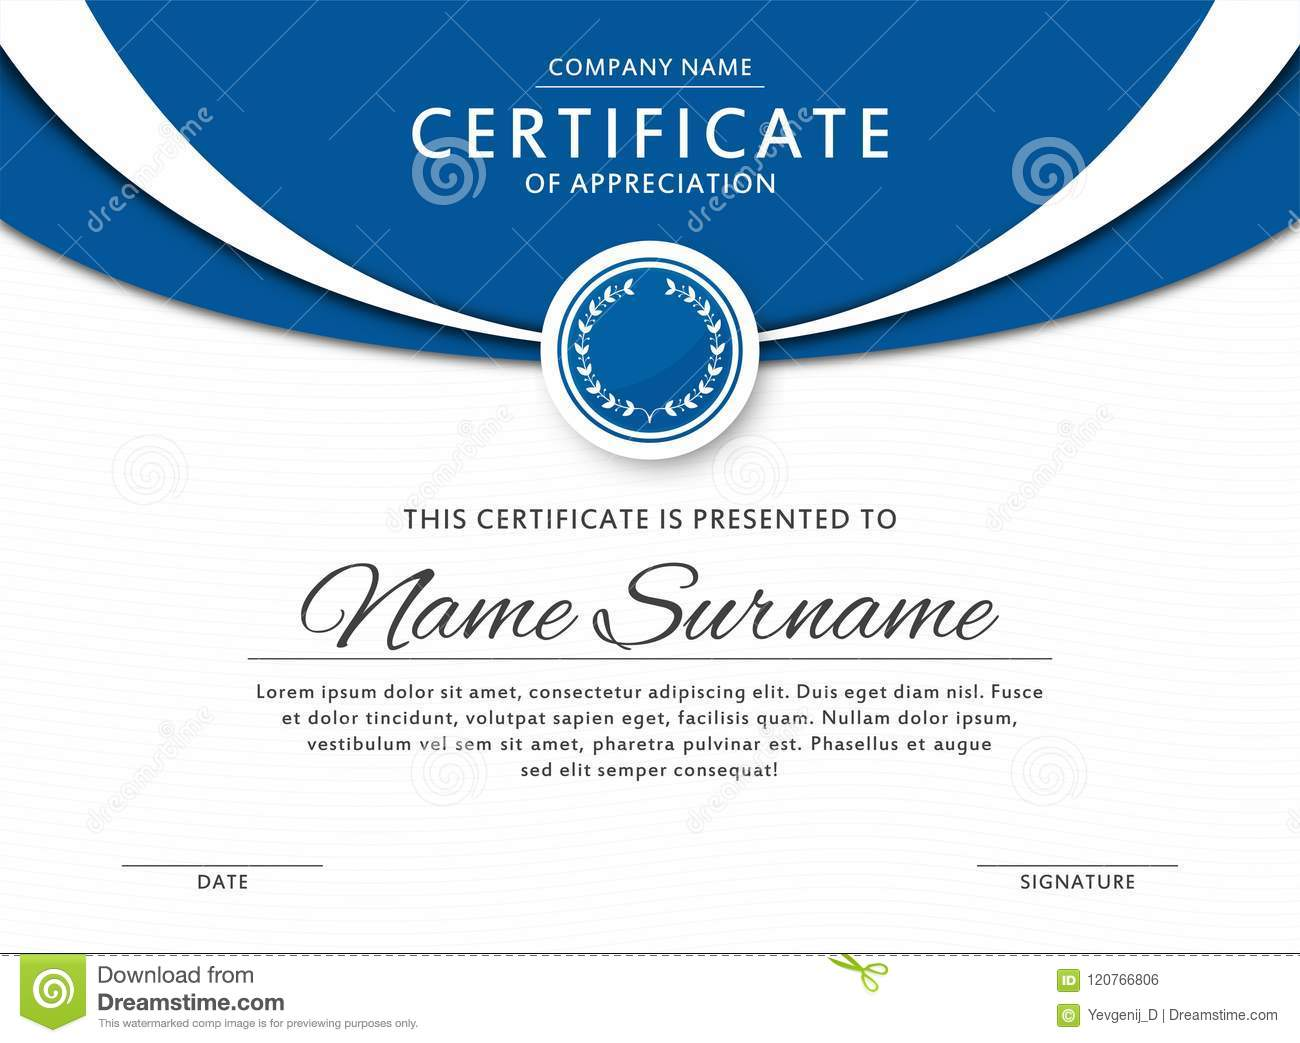 Certificate Template In Elegant Blue Color With Medal And Abstract ...